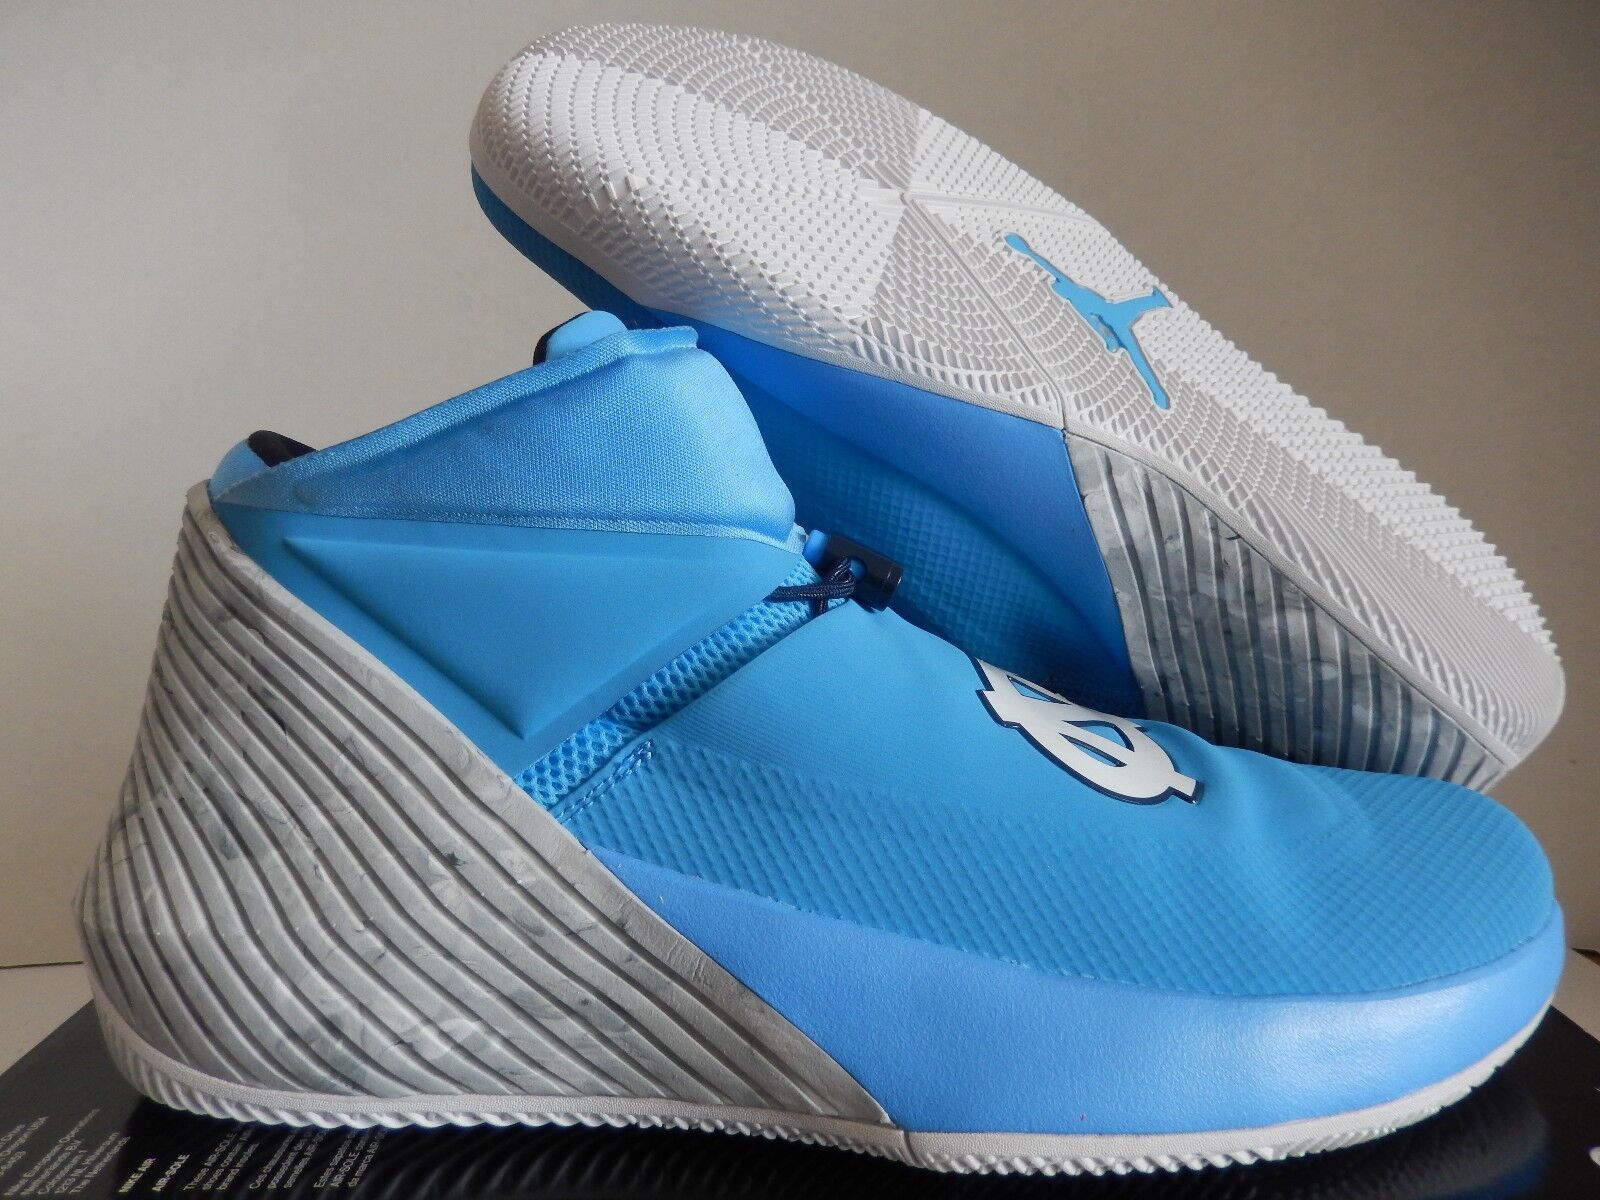 sports shoes e59e2 ff09d ... official store nike air jordan unc why not zer0.1 university bleu unc  jordan tarheels